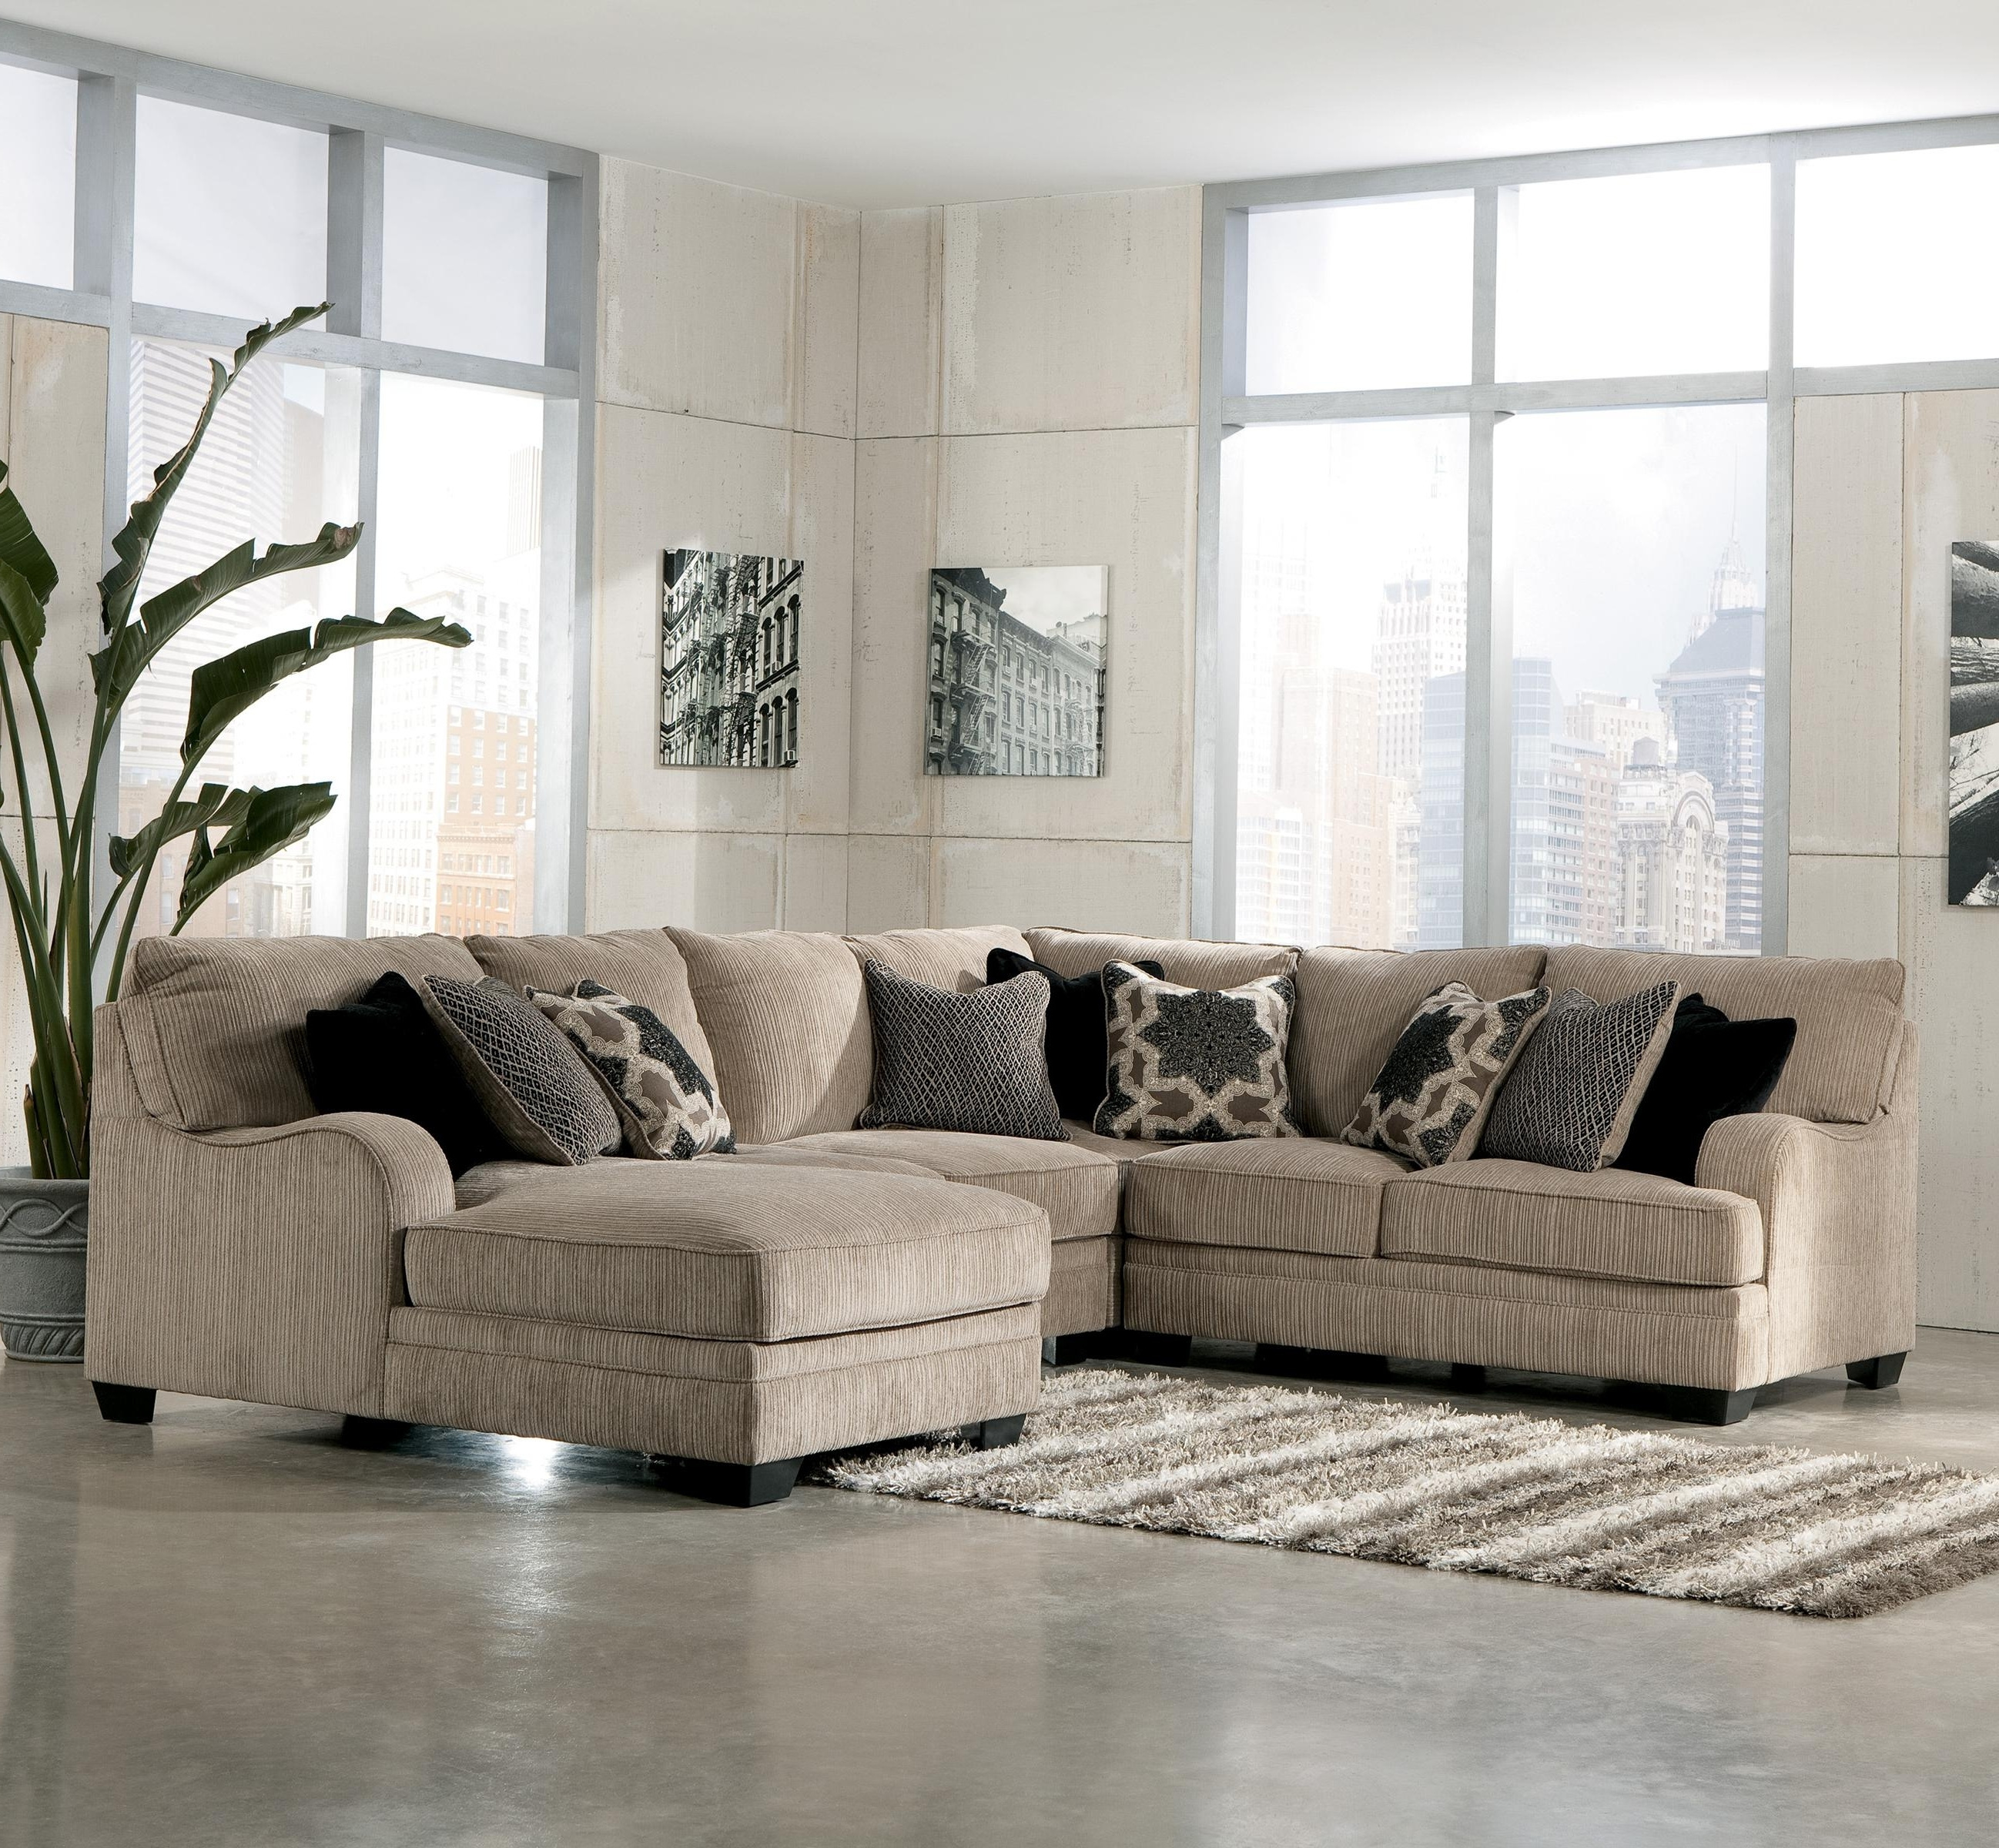 Widely Used Signature Designashley Katisha – Platinum 5 Piece Sectional For Peterborough Ontario Sectional Sofas (View 9 of 20)